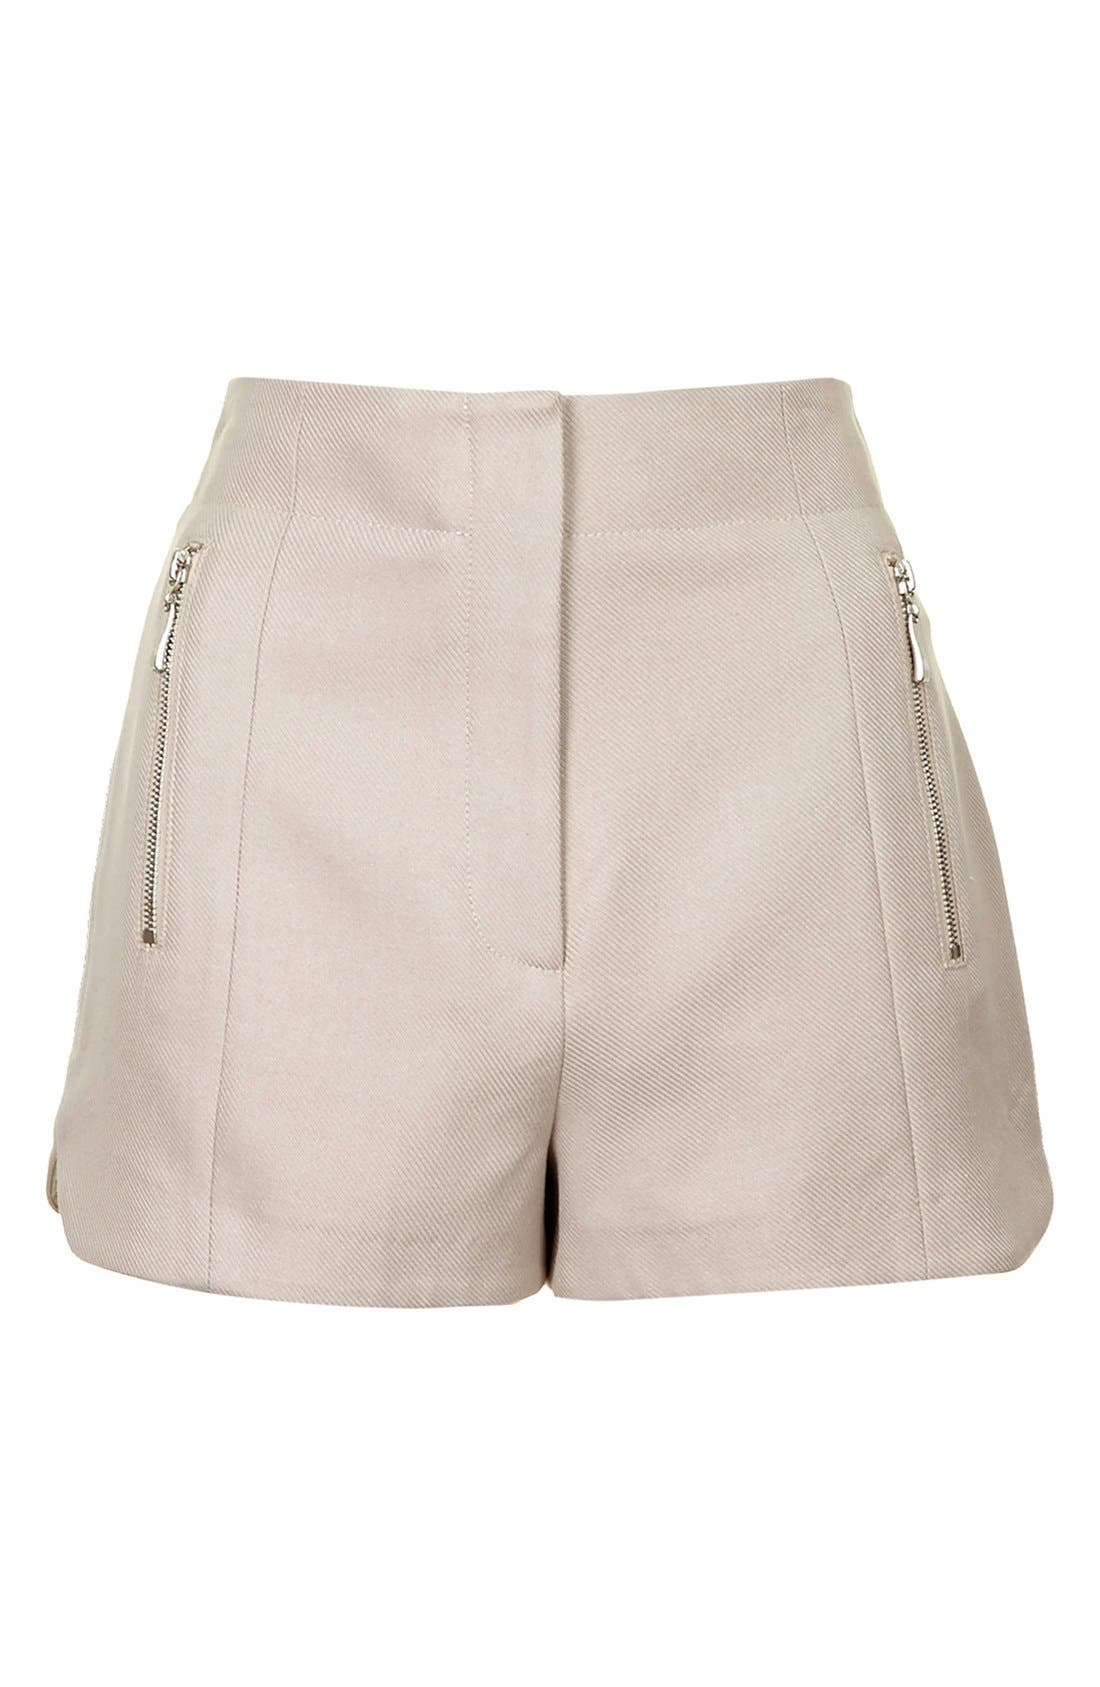 Alternate Image 4  - Topshop Utility Shorts (Nordstrom Exclusive)